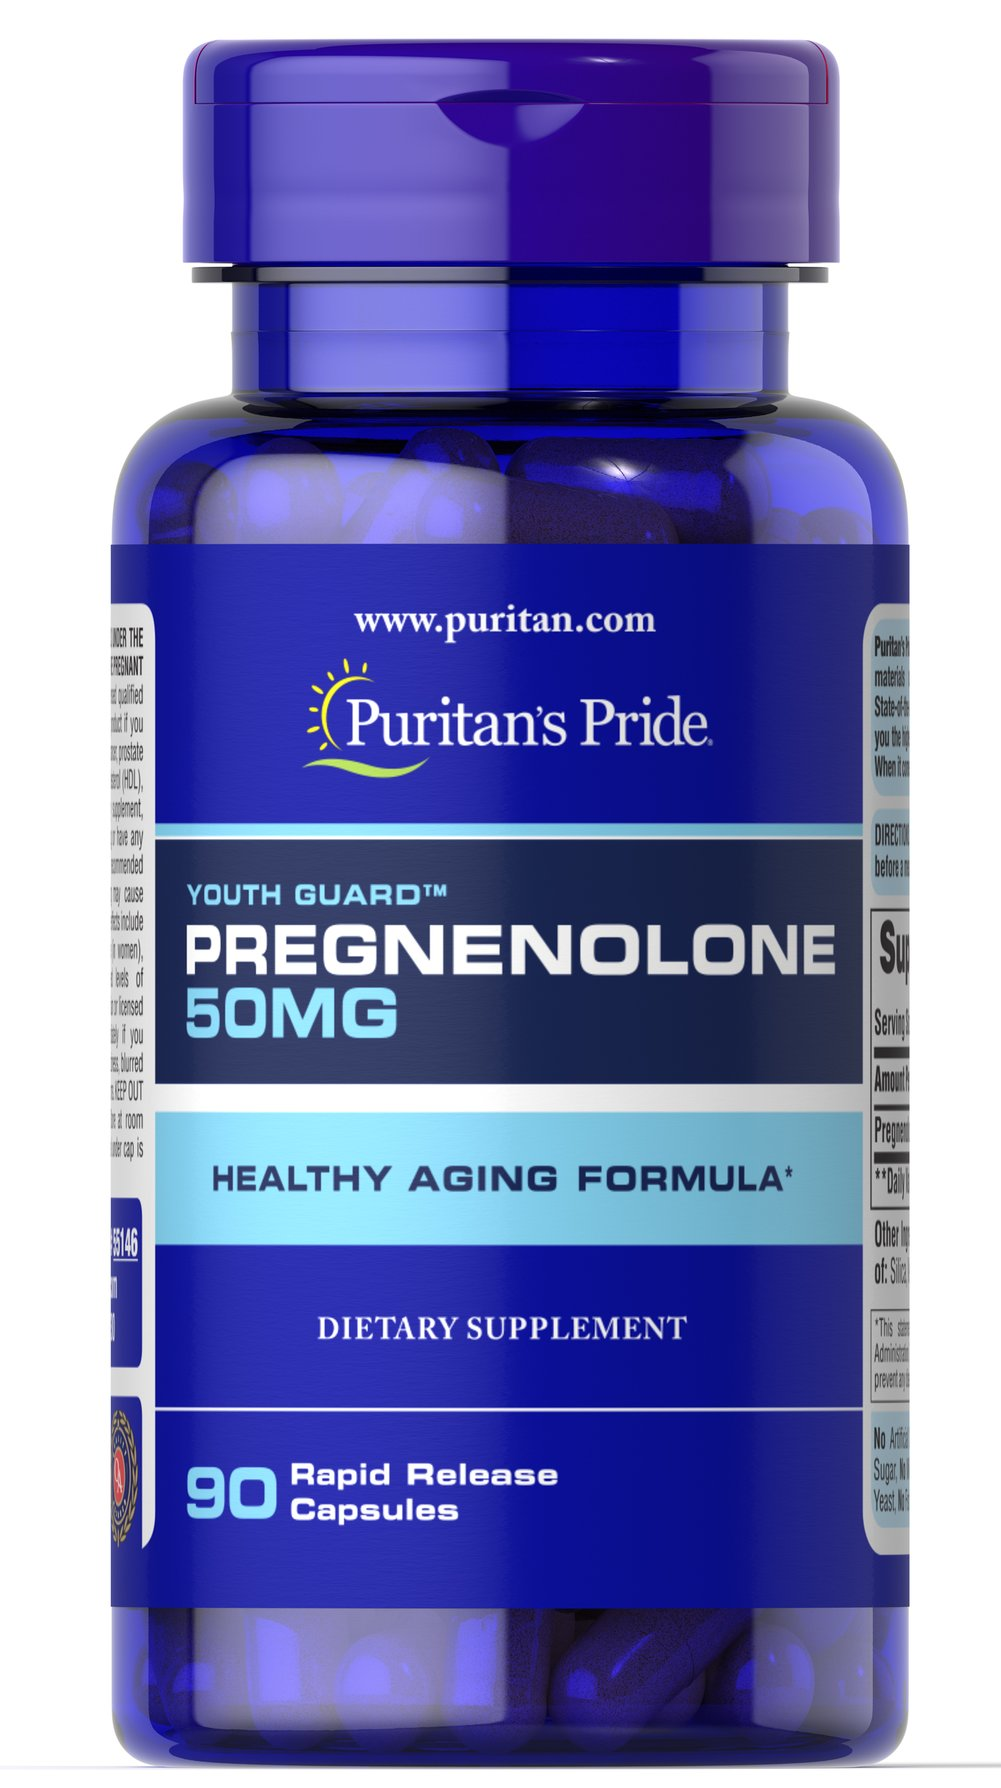 Pregnenolone 50 mg <p>Pregnenolone is a substance our bodies produce in the adrenal glands and liver . Since Pregnenolone levels can decline with age, just one serving a day of Puritan's Pride Pregnenolone can contribute to your healthy aging regimen.**</p> 90 Capsules 50 mg $15.99